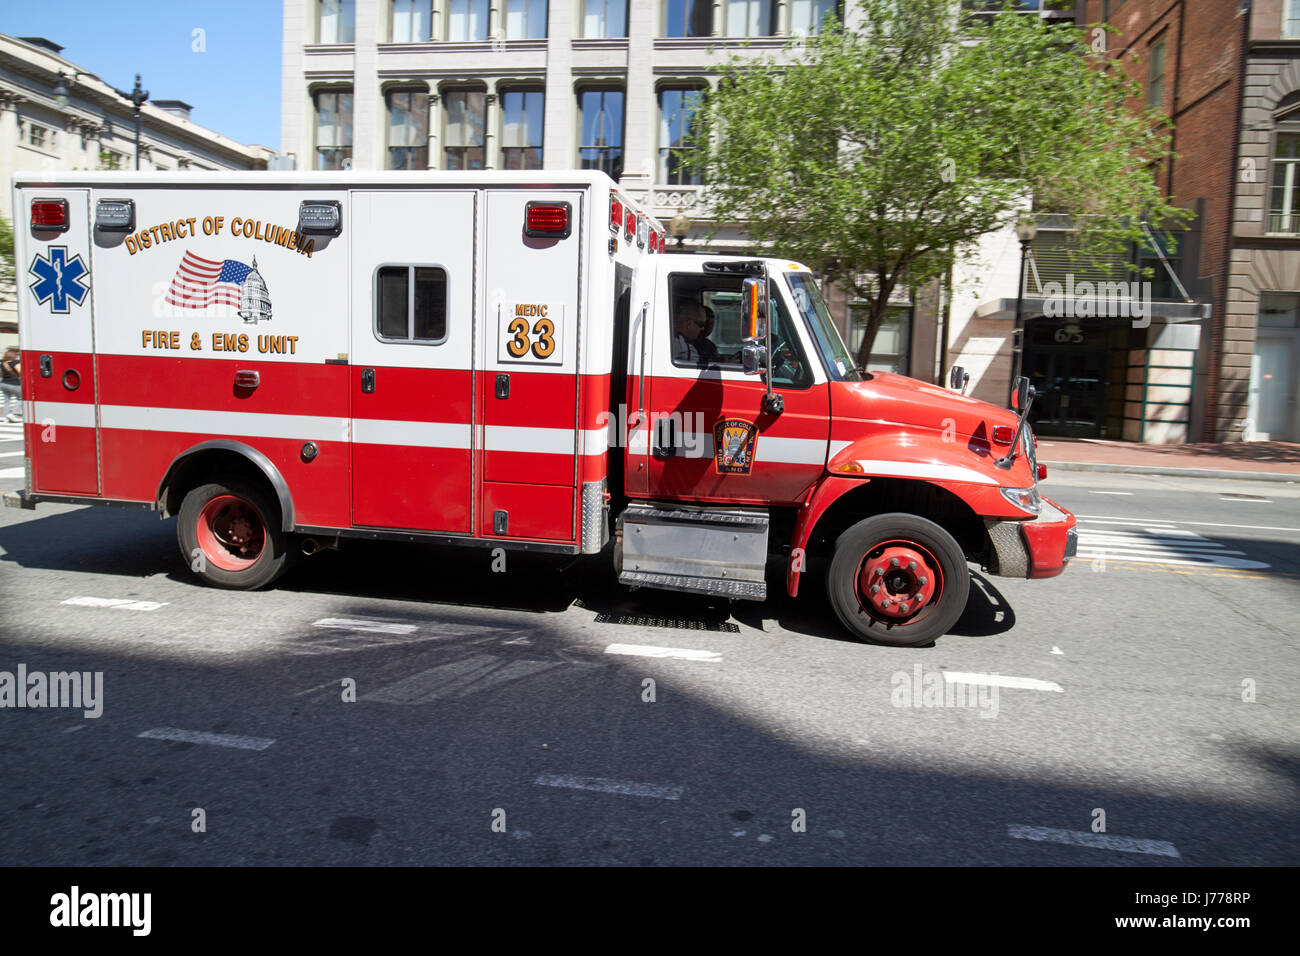 District de Columbia fire et unité ems medic sur appel Washington DC USA Photo Stock